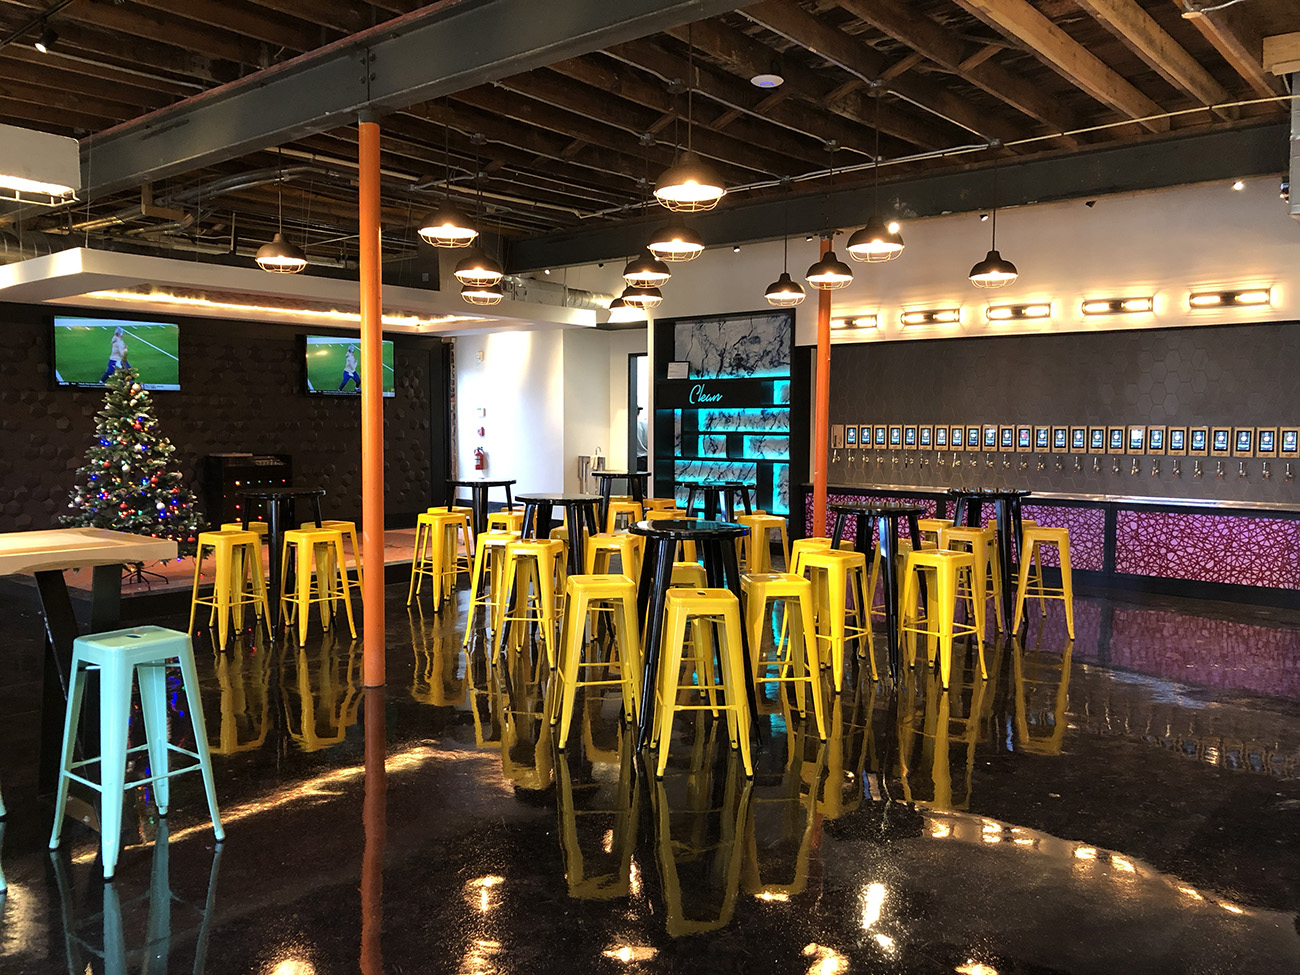 Self-serve taproom The Studio opens between Mac's and Southbound — expect focus on live entertainment